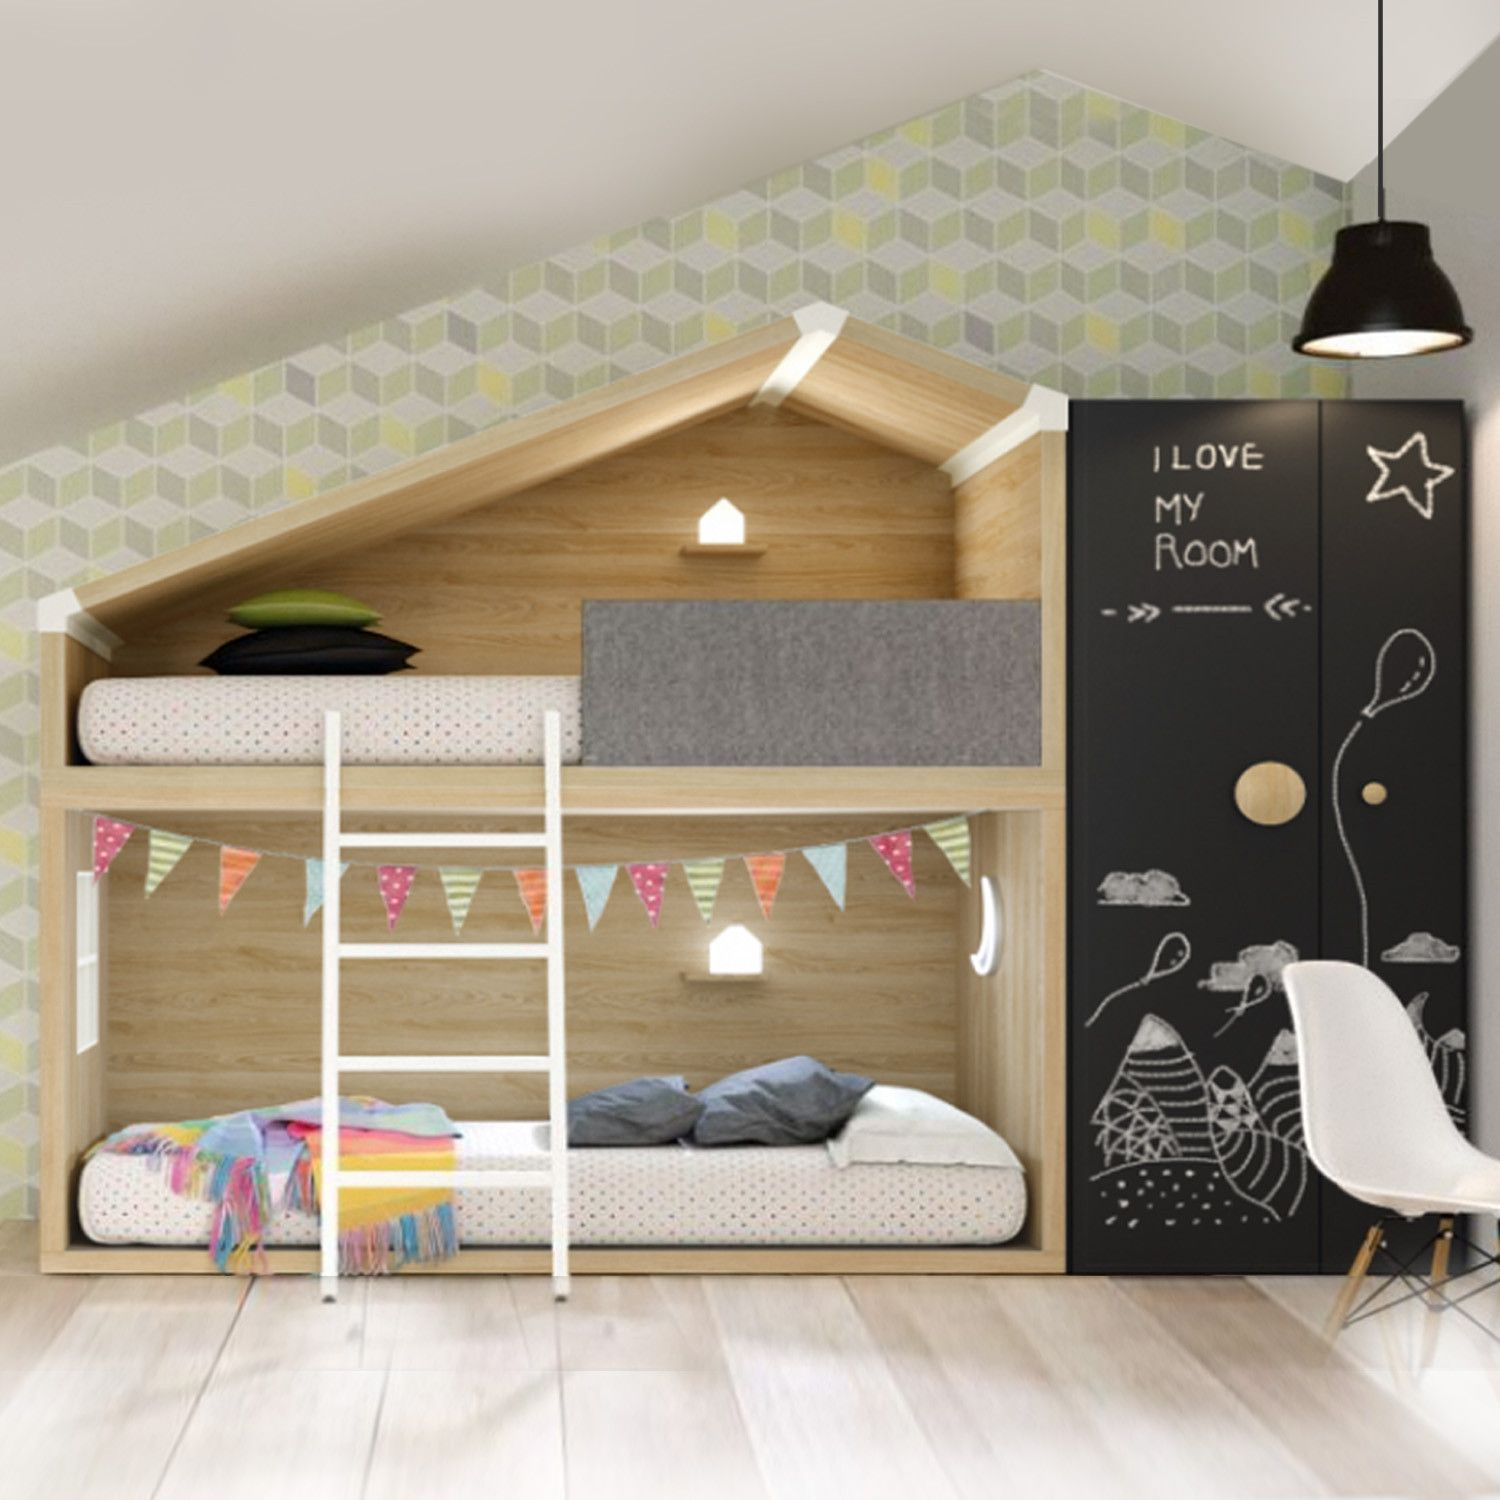 Imported Furniture Online: COTTAGE Bunk Beds And Storage. Imported From Spain And